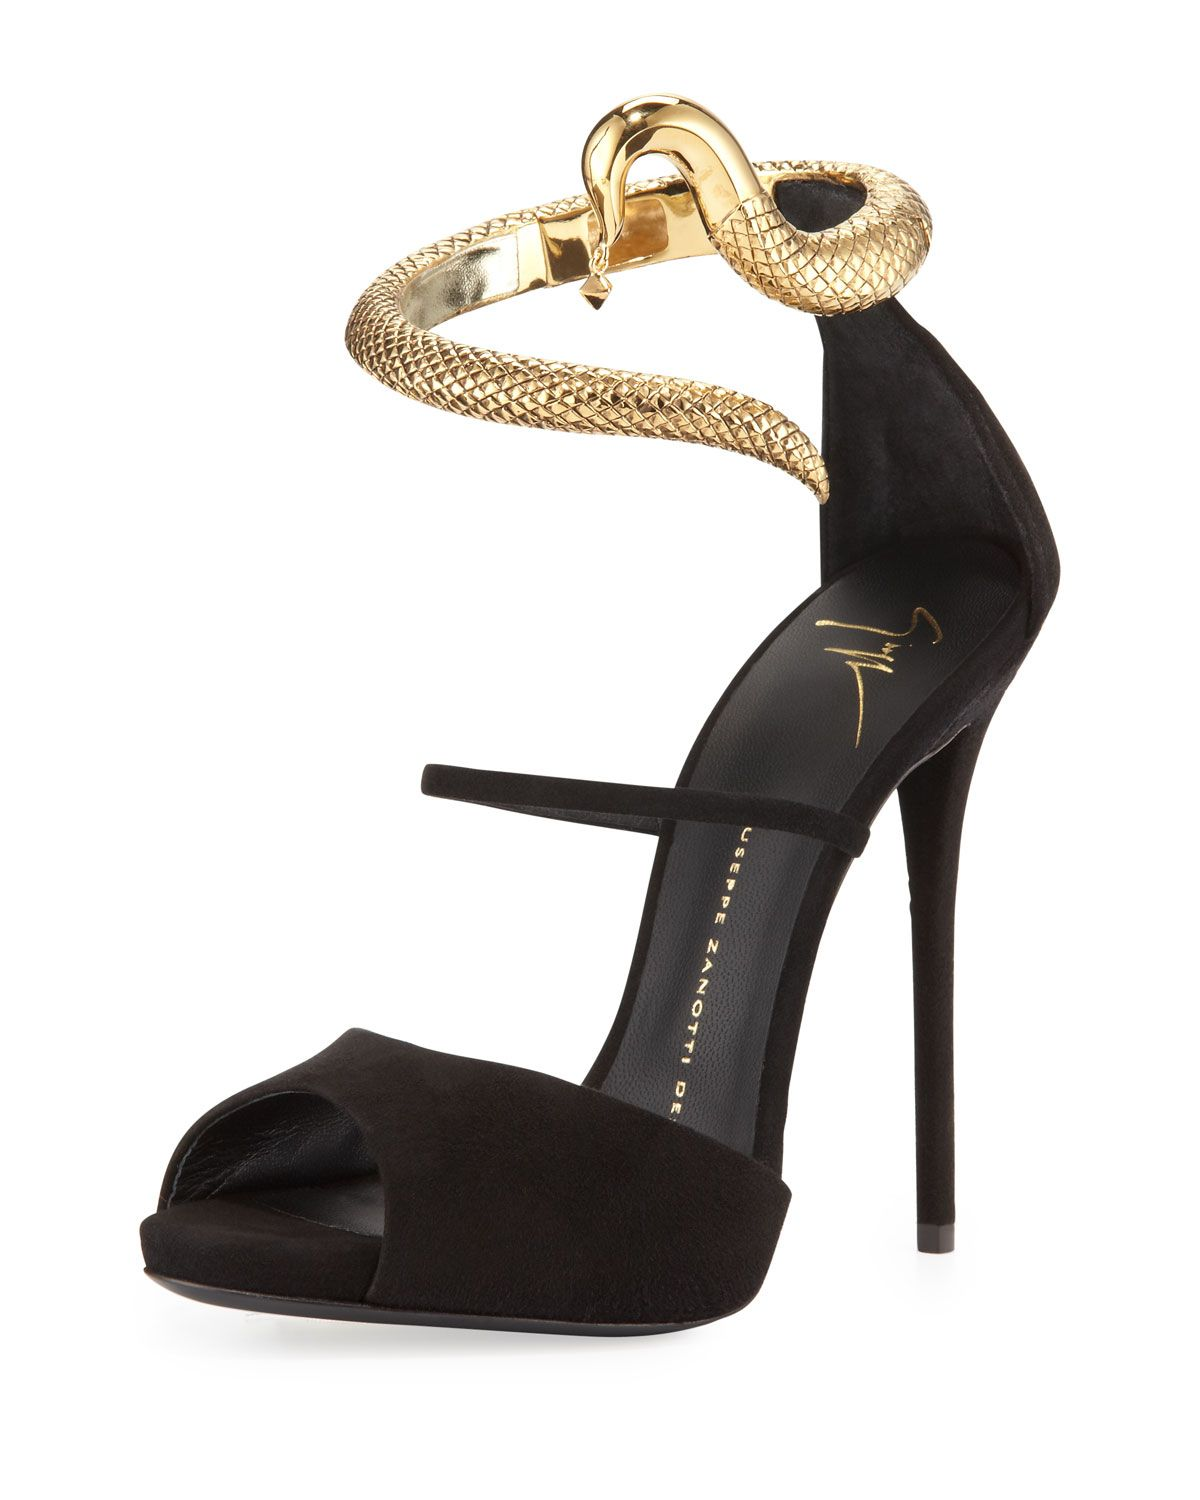 9A5163H Giuseppe Zanotti Womens Peep-Toe Pumps Black Nappa Leather 140Mm Outlet